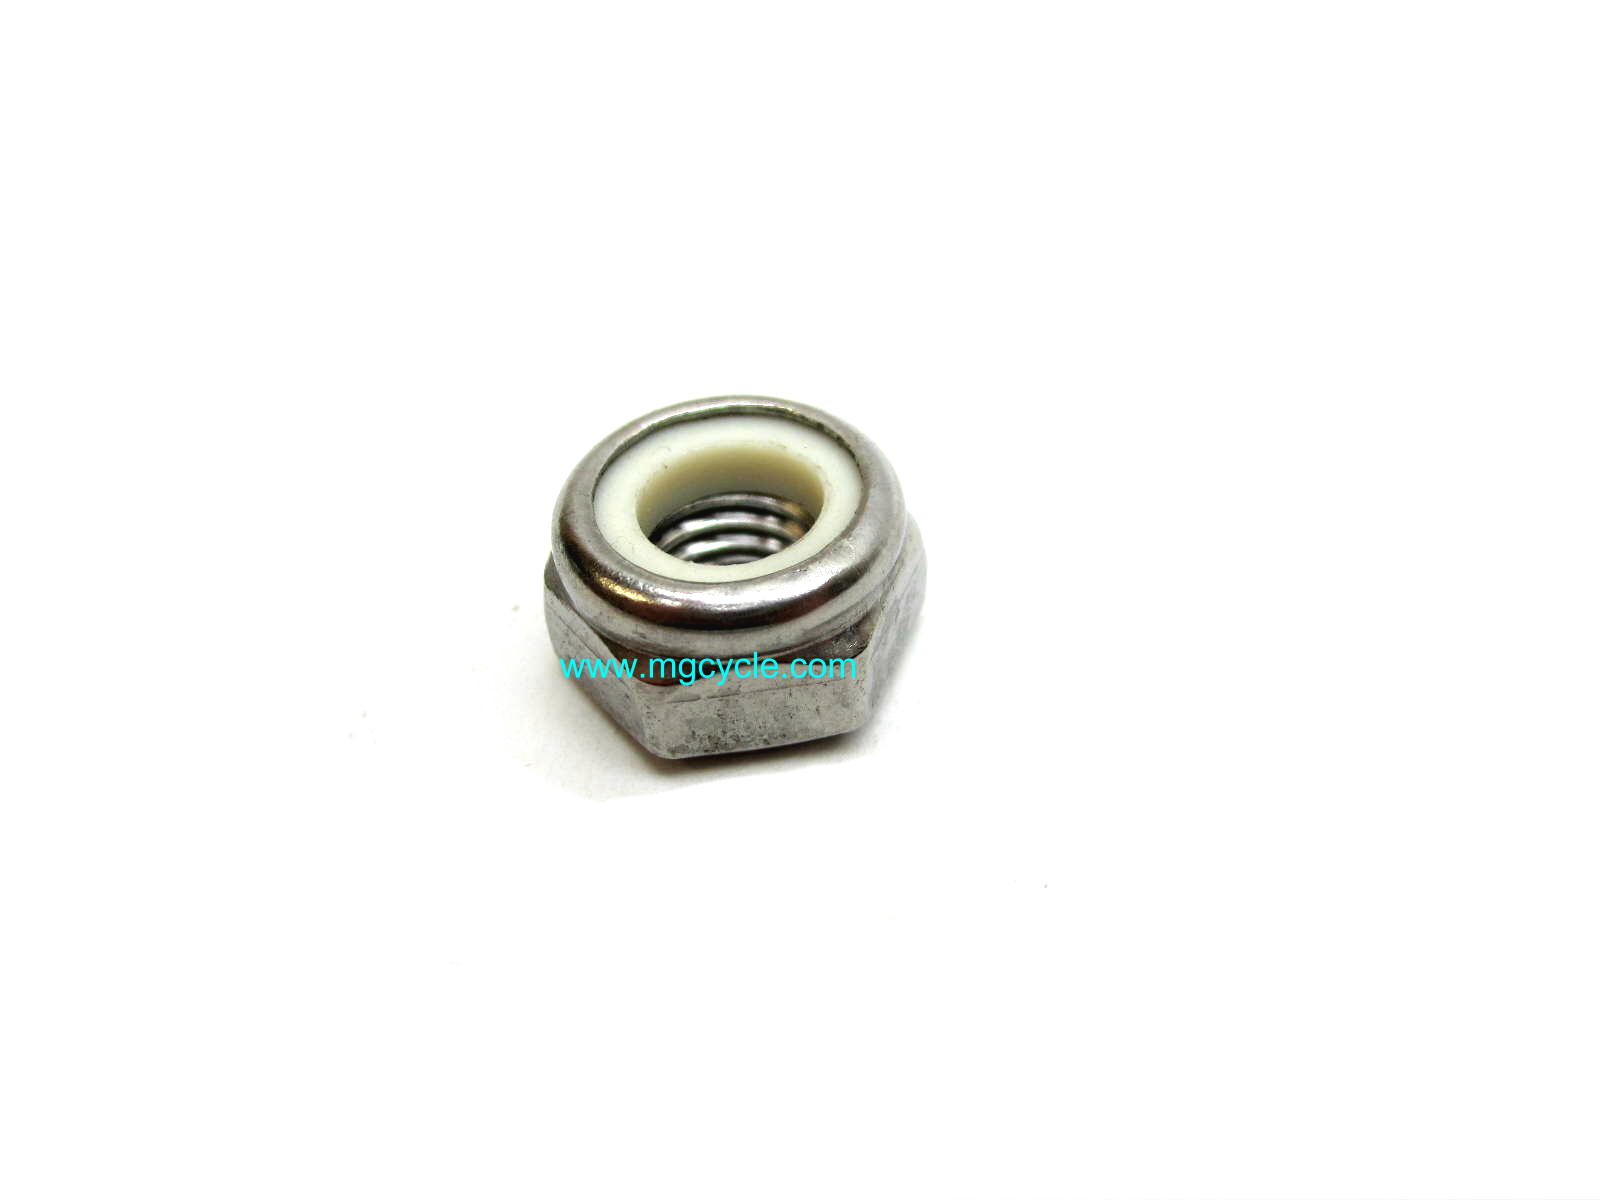 10mm hex nut, stainless steel